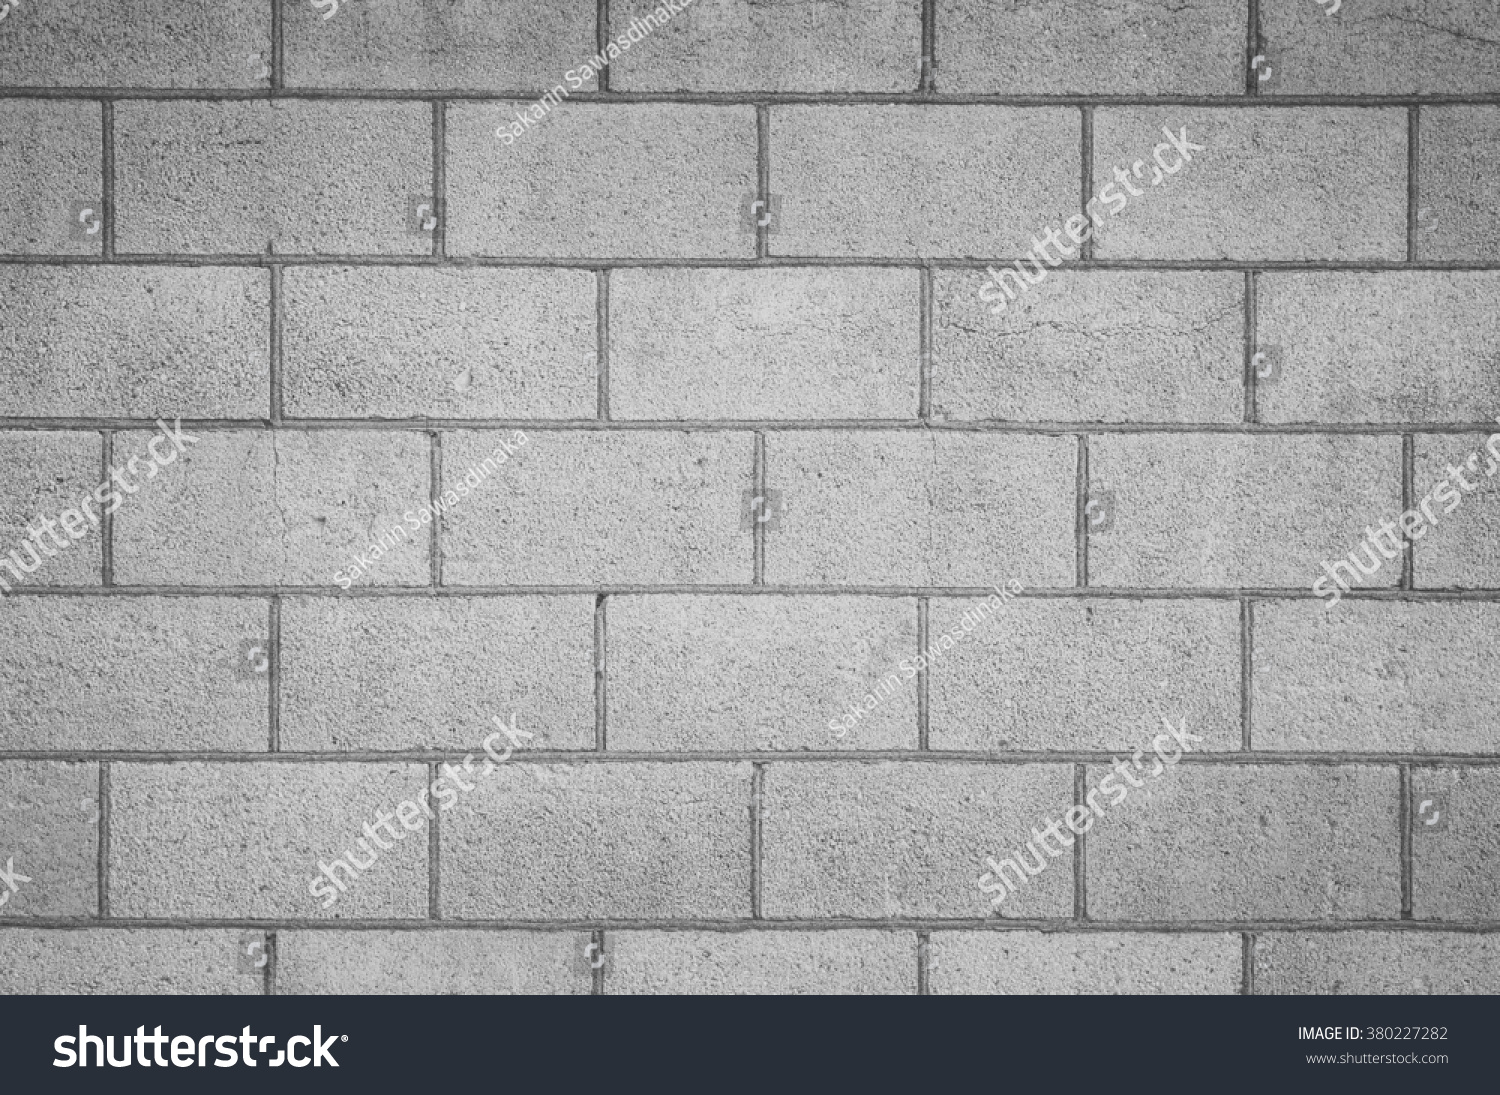 Seamless Block Wall : Concrete block wall seamless background texture stock